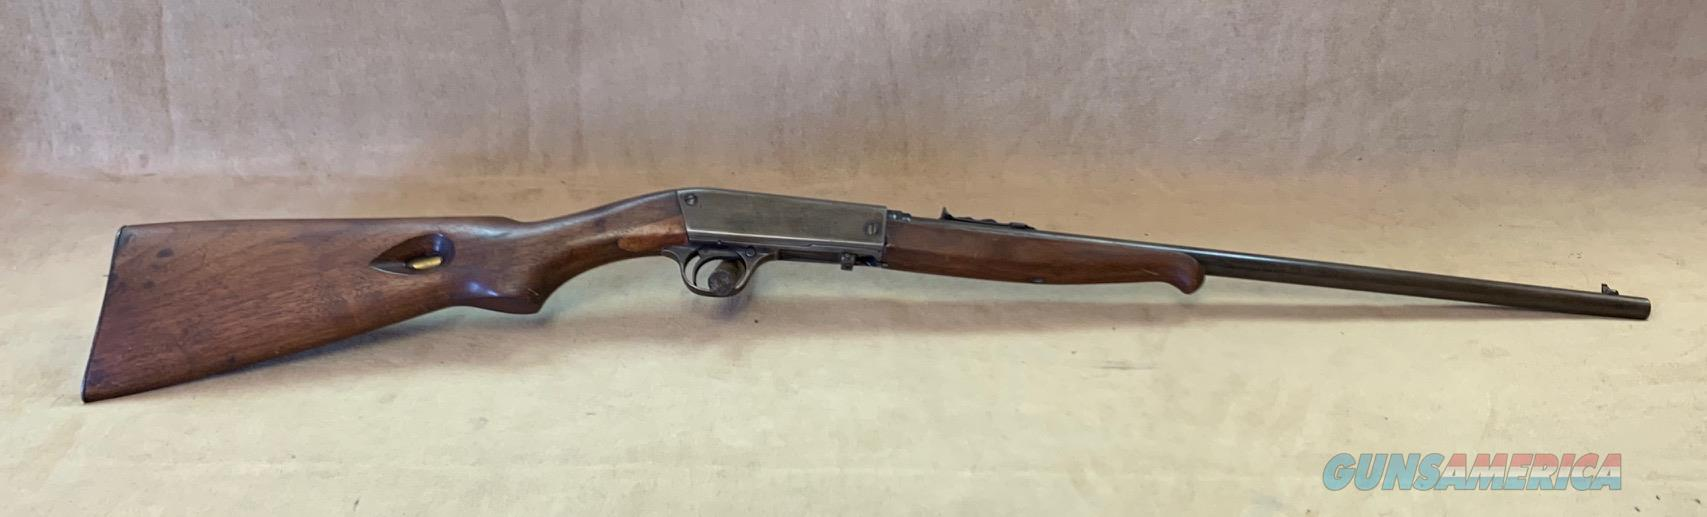 Remington 24 22 Short Consignment  Guns > Rifles > Remington Rifles - Modern > .22 Rimfire Models